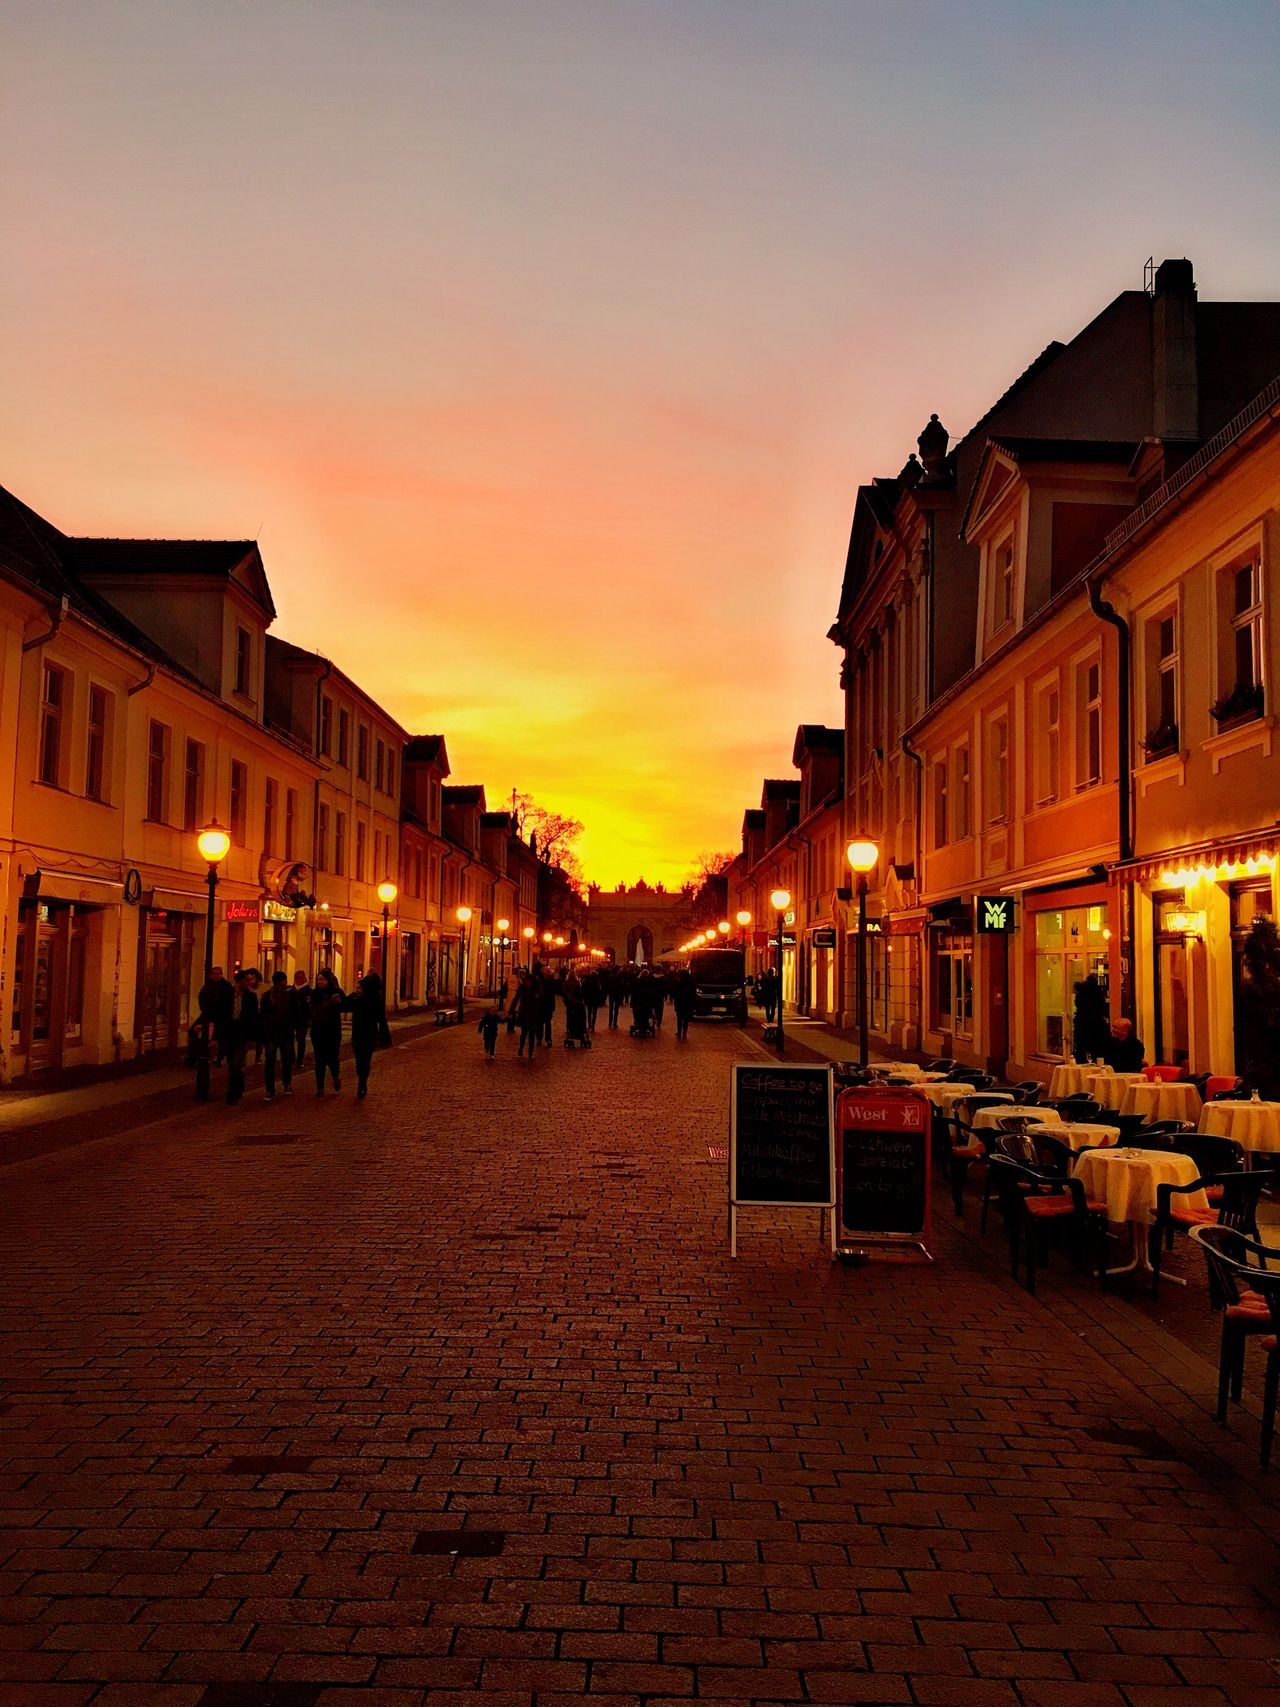 Potsdam Brandenburger Straße Sonnenuntergang Stadt Architecture Sunset Built Structure City Street City Life Orange Color Town Square Fußgängerzone The Architect - 2016 EyeEm Awards Street Photography The City Light